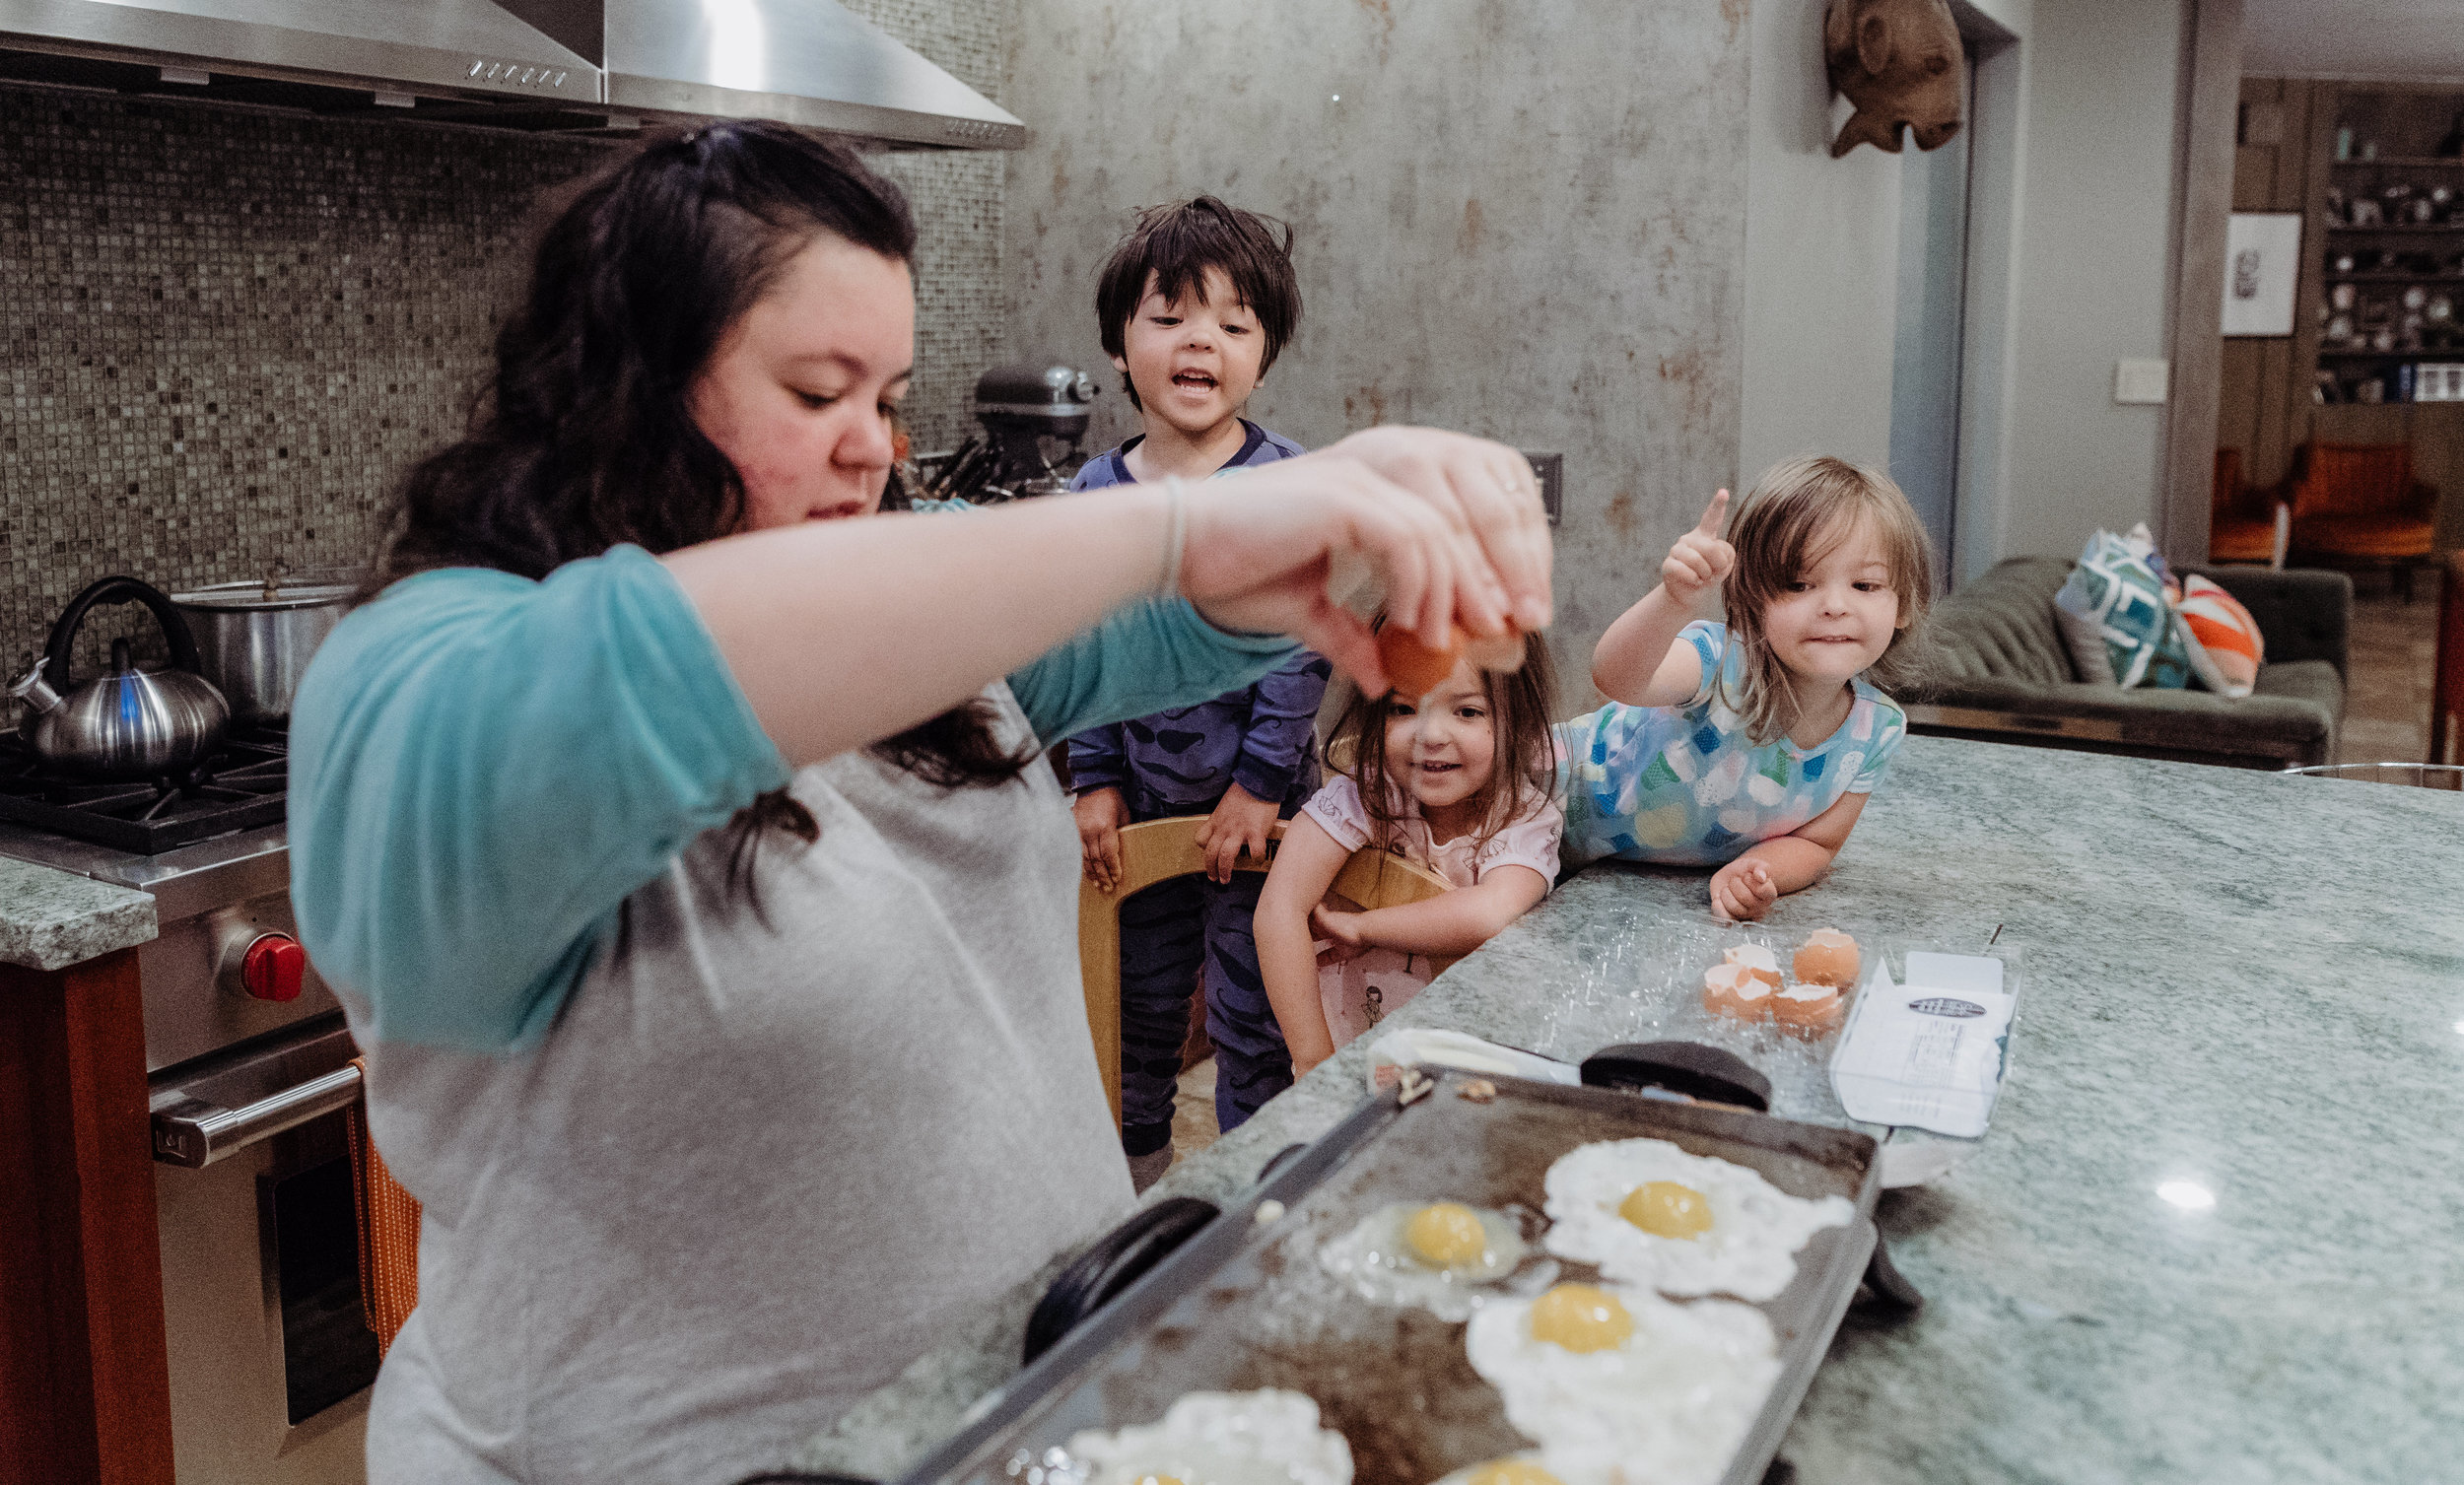 documentary lifestyle family photo session kids helping mom bake in kitchen Ore Adesina Photography Oklahoma City